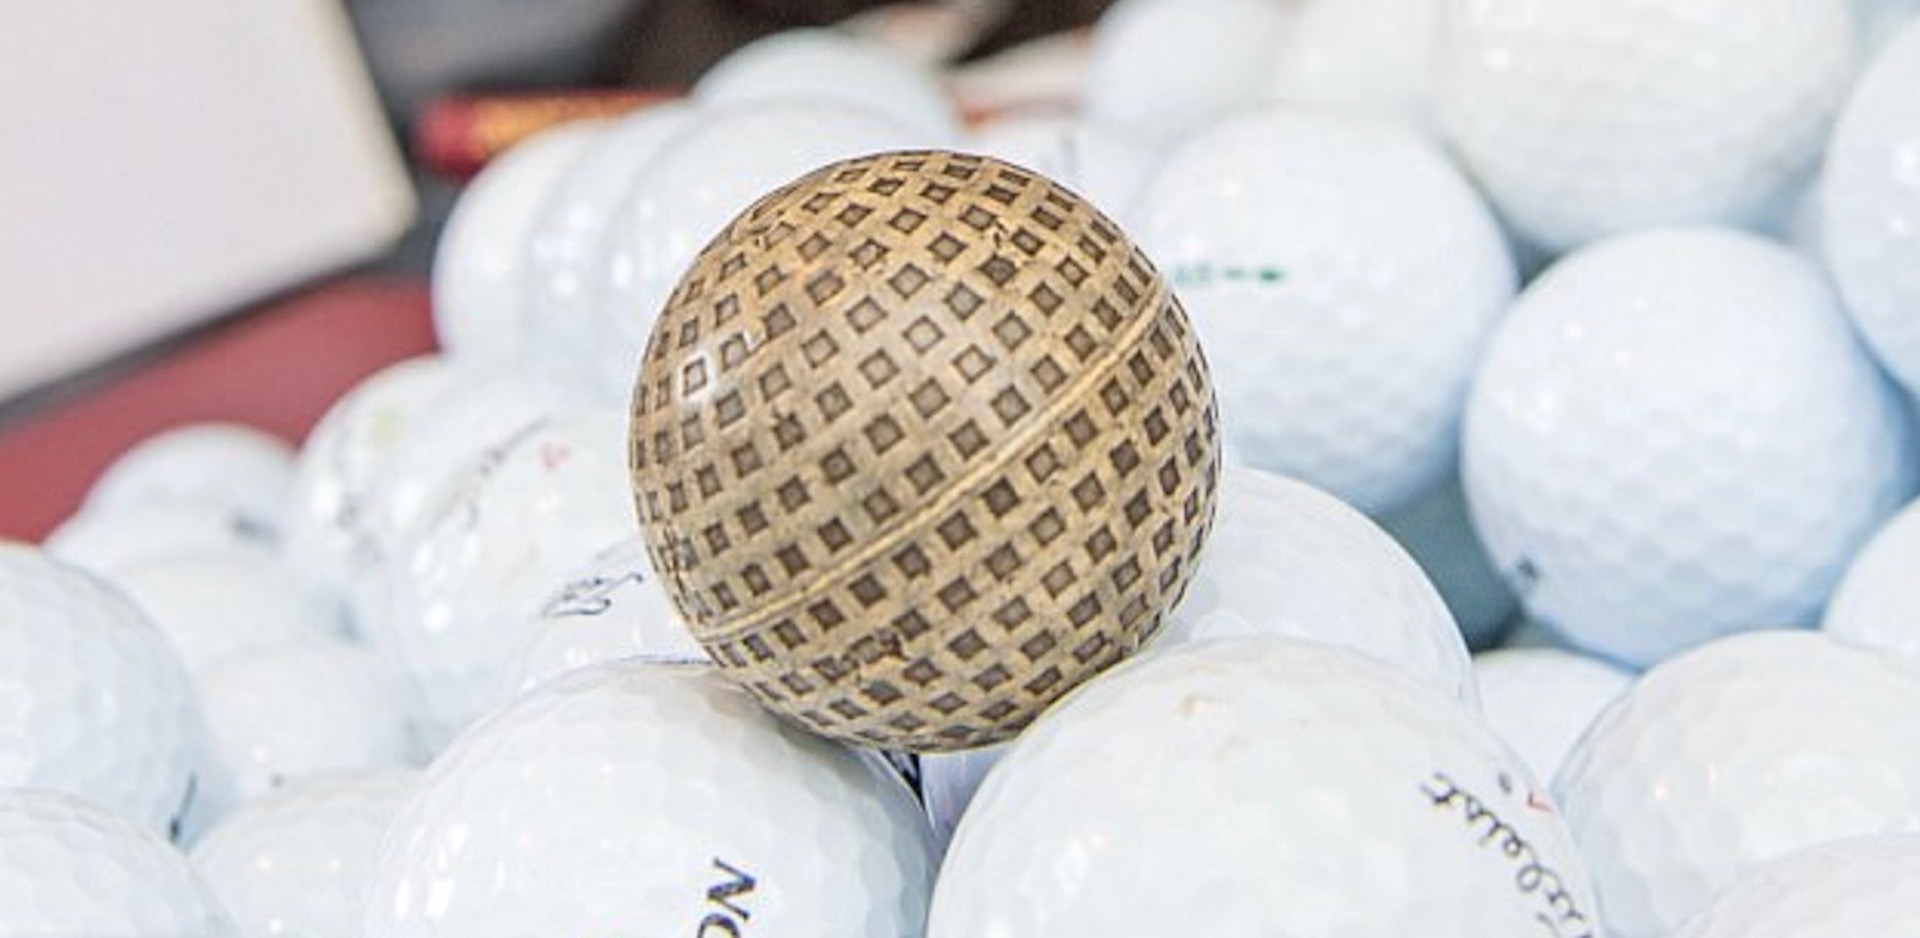 Collie finds 51,000 golf balls